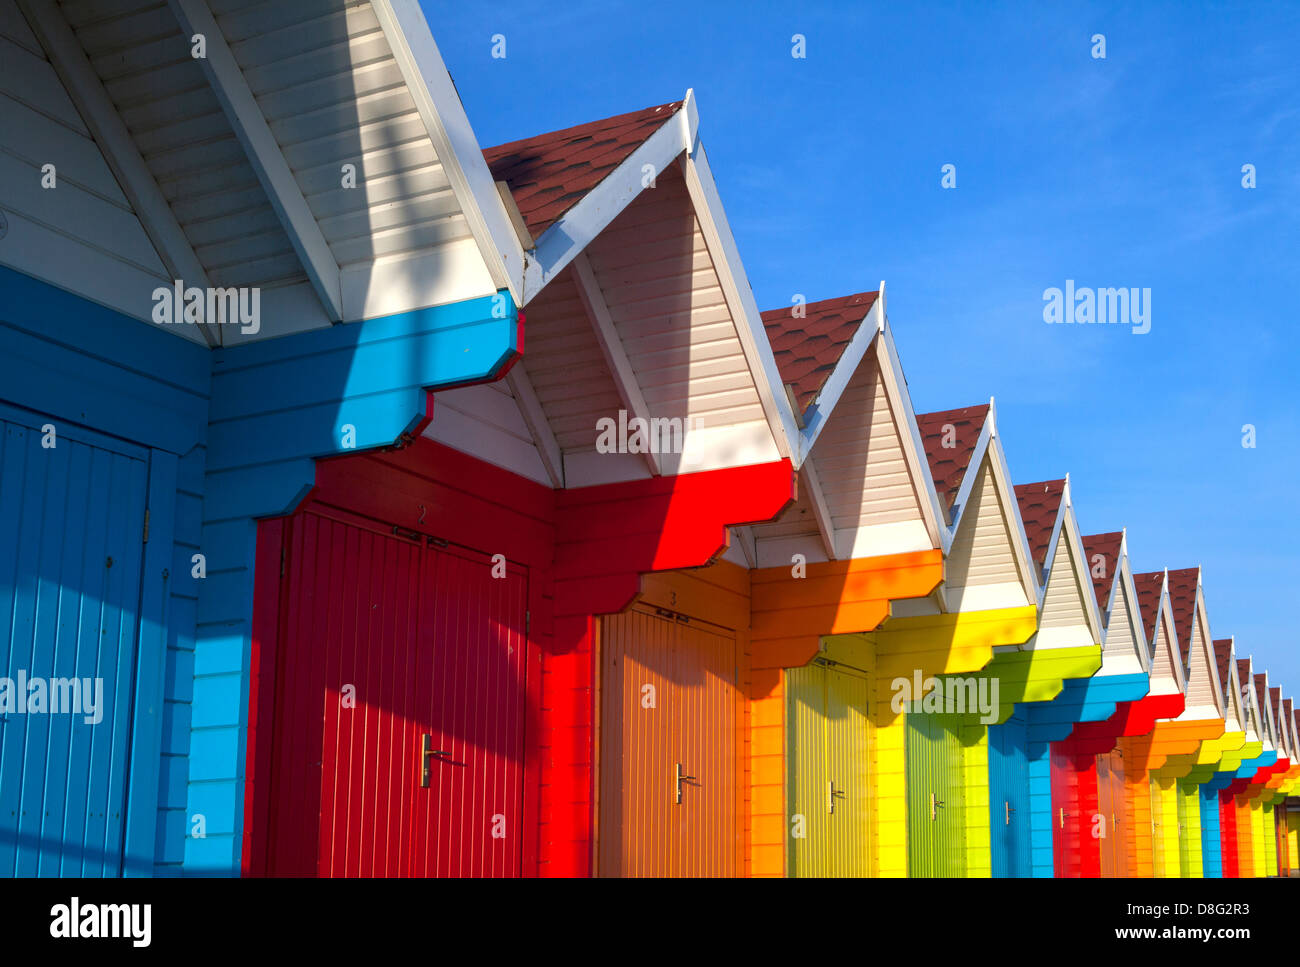 Brightly coloured wooden beach huts, known as beach chalets, in sunshine at Scarborough North Bay, North Yorkshire, - Stock Image